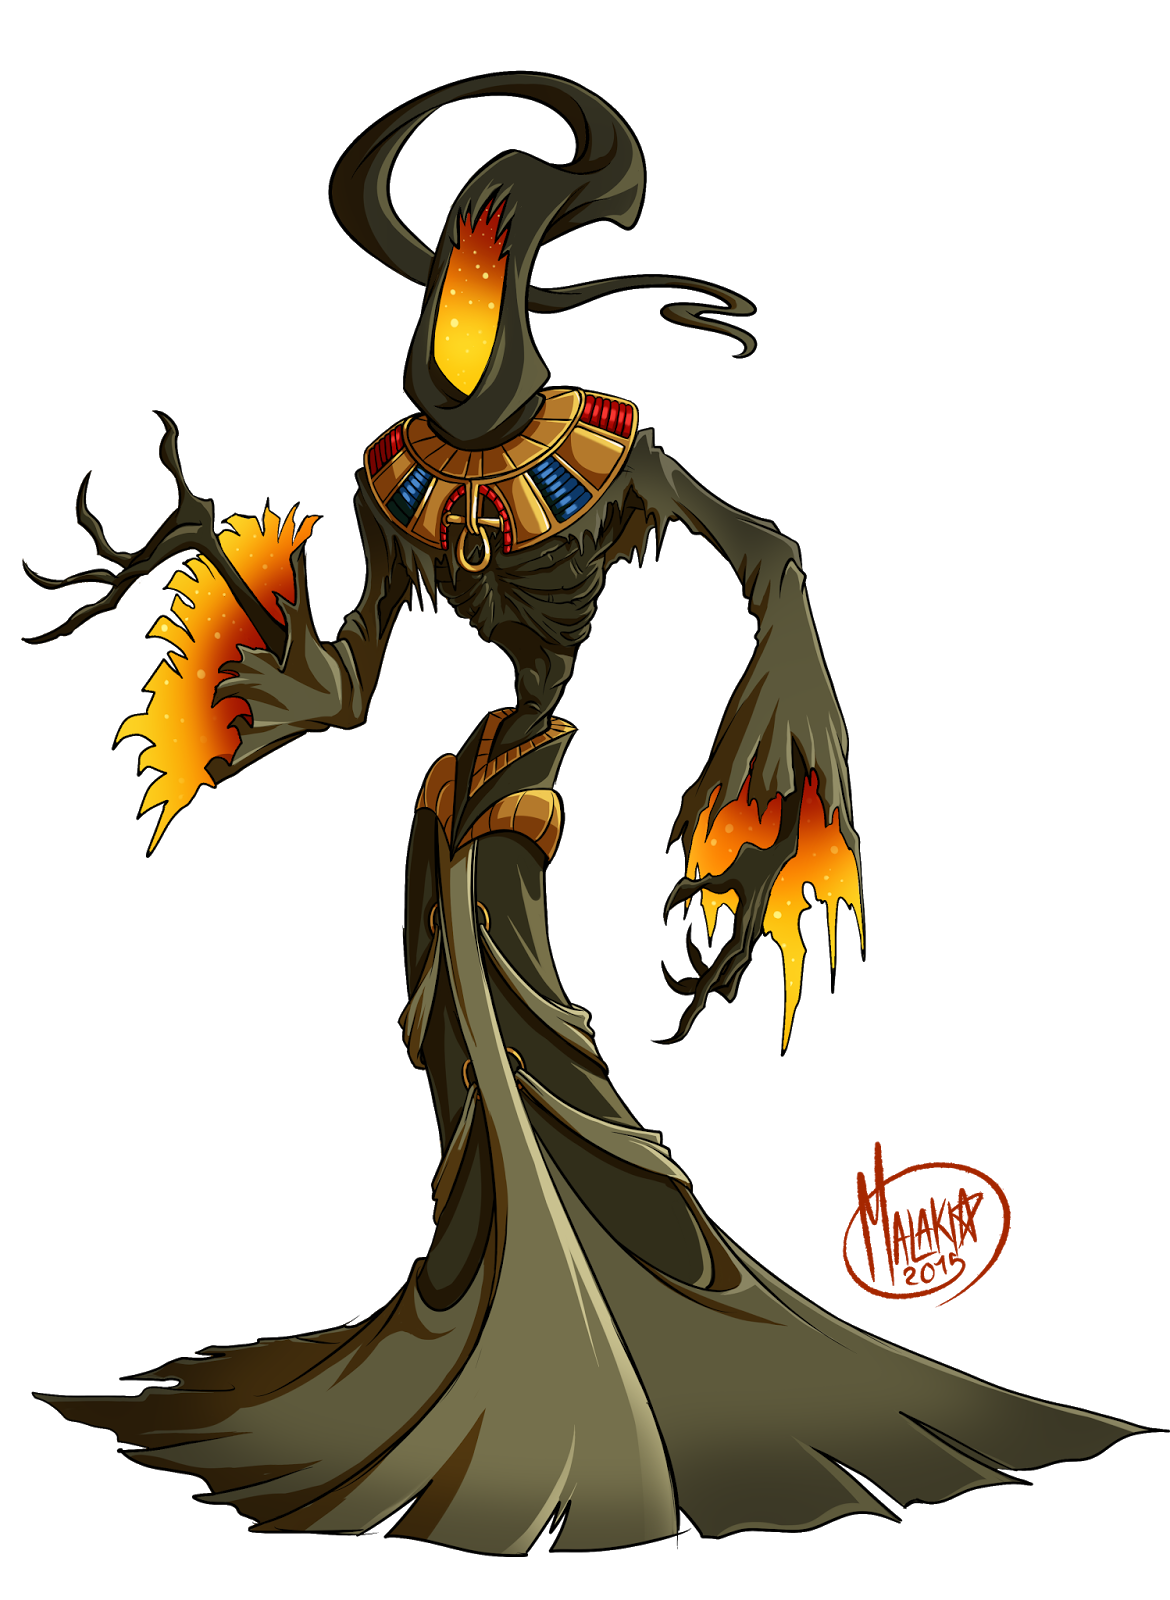 The Dream Quest Of Unknown Kadath Video Game Nyarlathotep Concept Art Amp Dialogue Images D